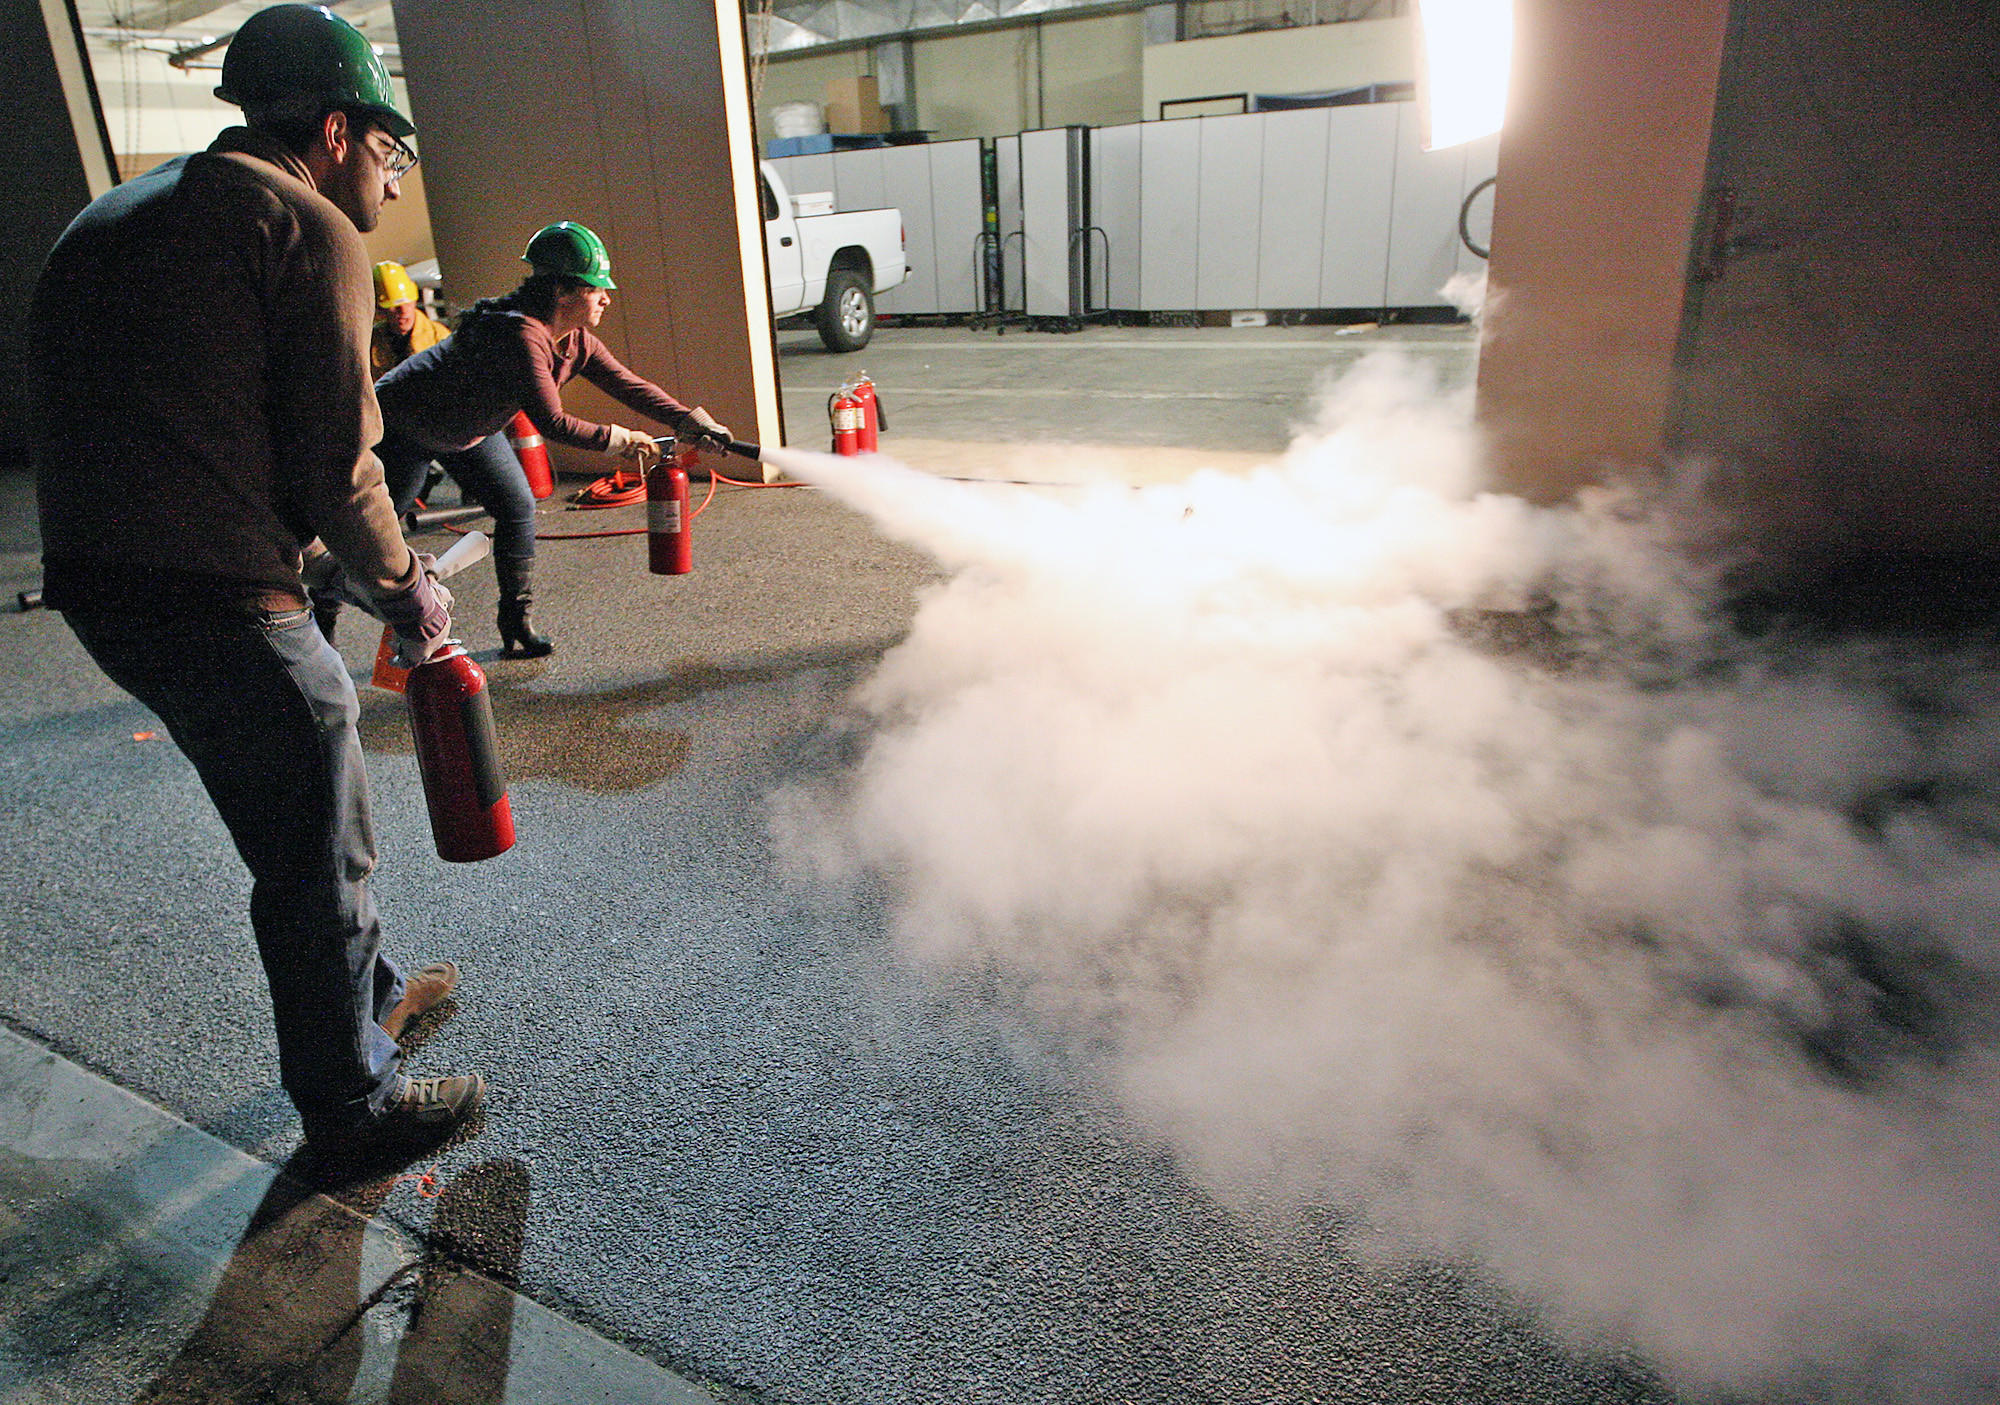 Glendale residents Reza Seraji and Ani Aharonian try their hand at putting out a fire with extinguishers during a CERT training program on Thursday, February 6, 2014.